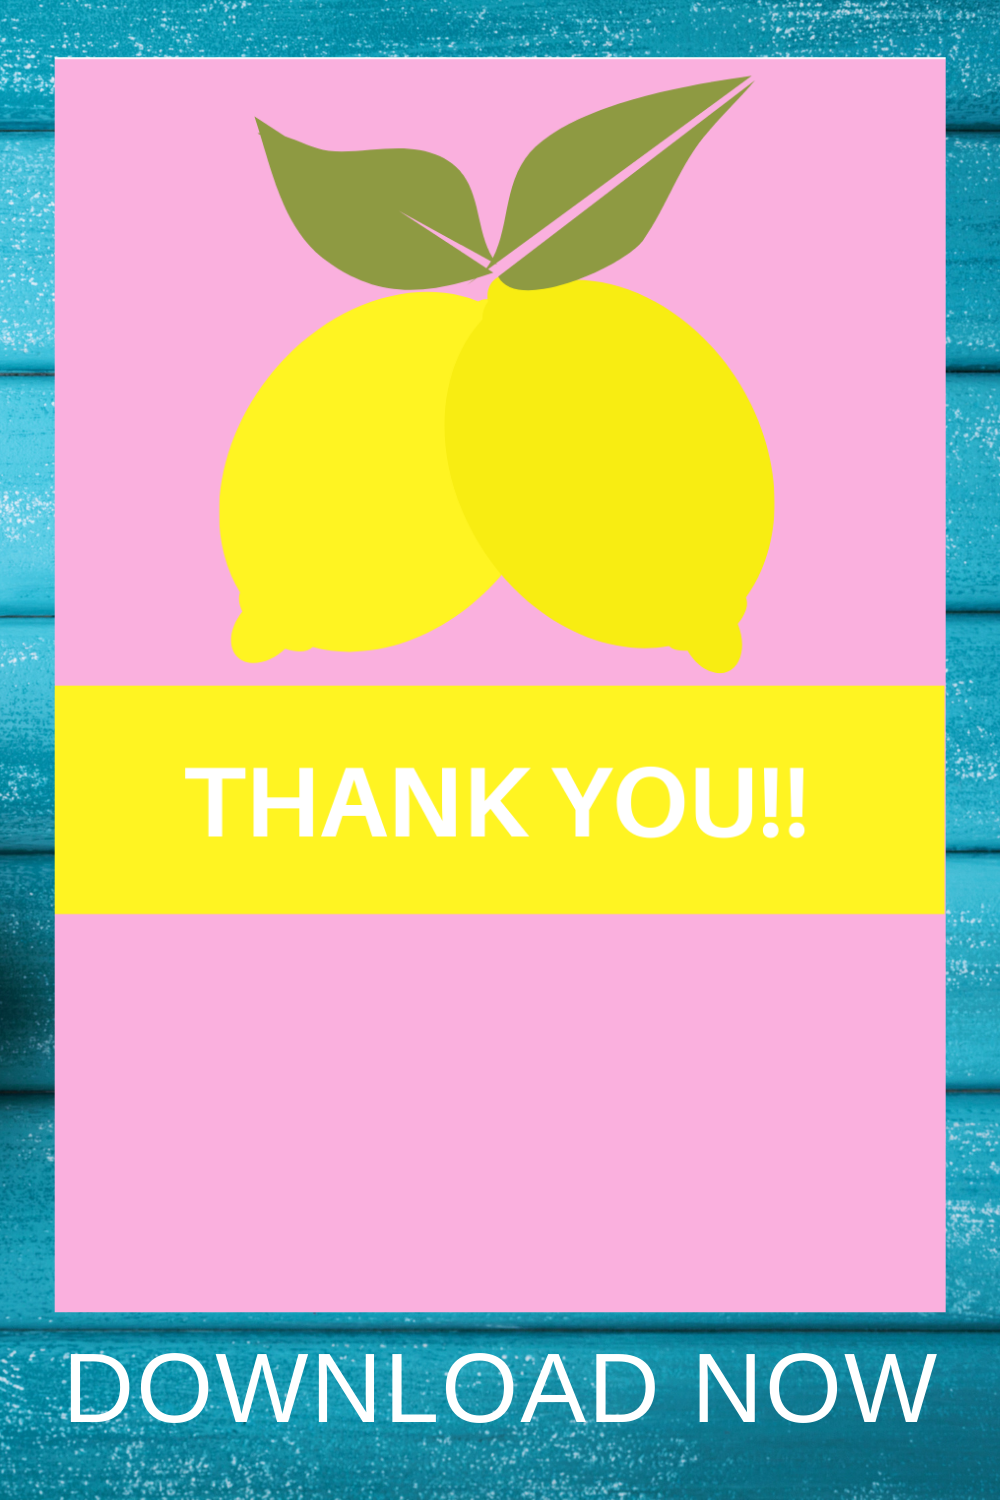 free download: lemon thank you card for a first birthday